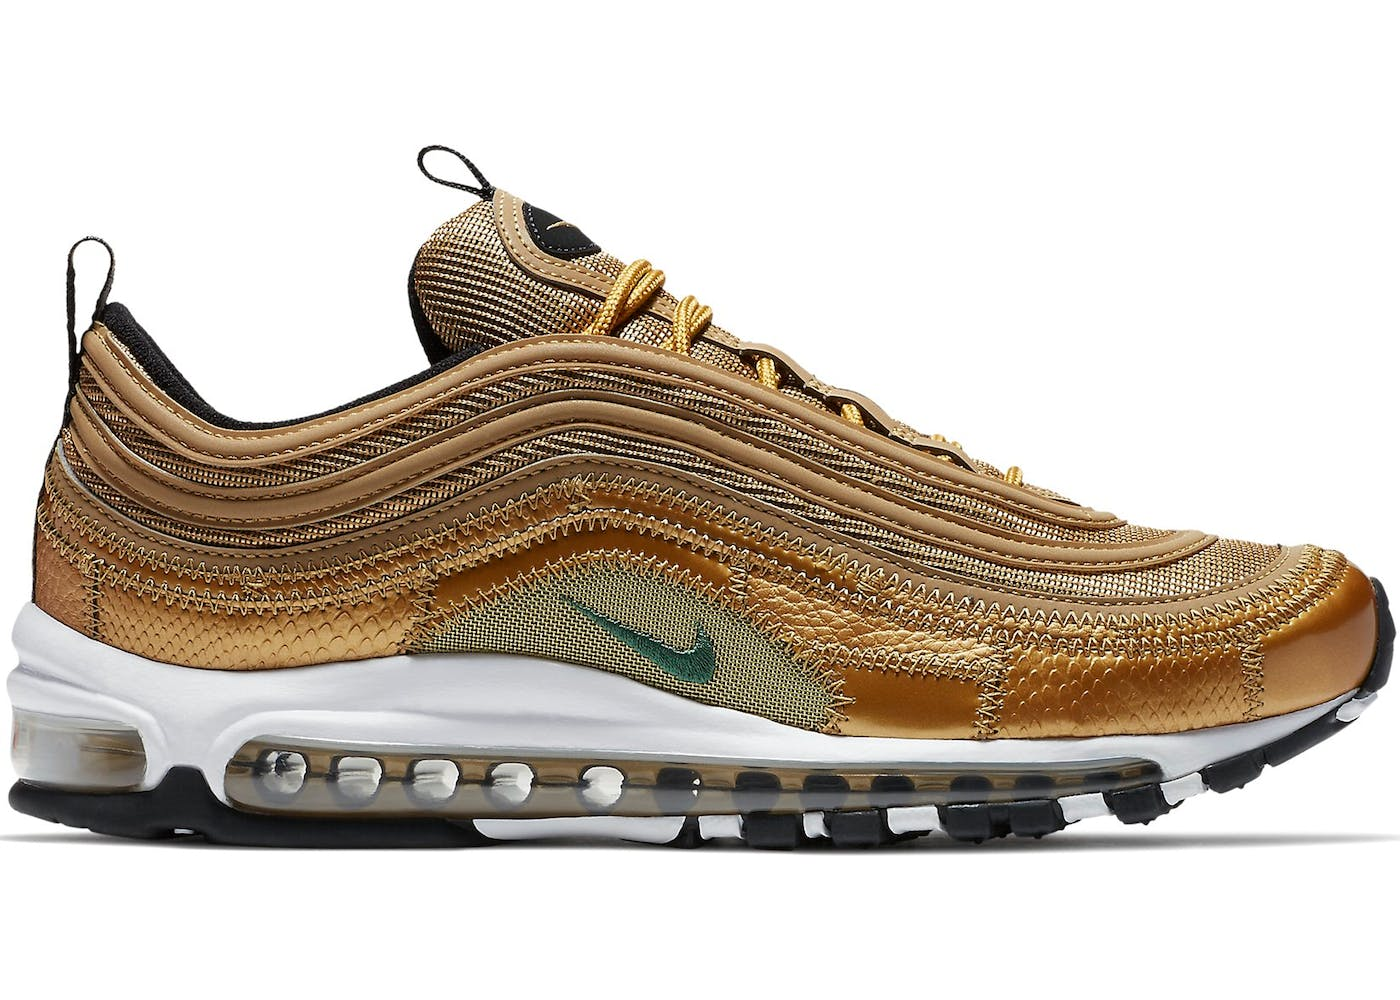 Air Max 97 Cristiano Ronaldo Metallic Gold